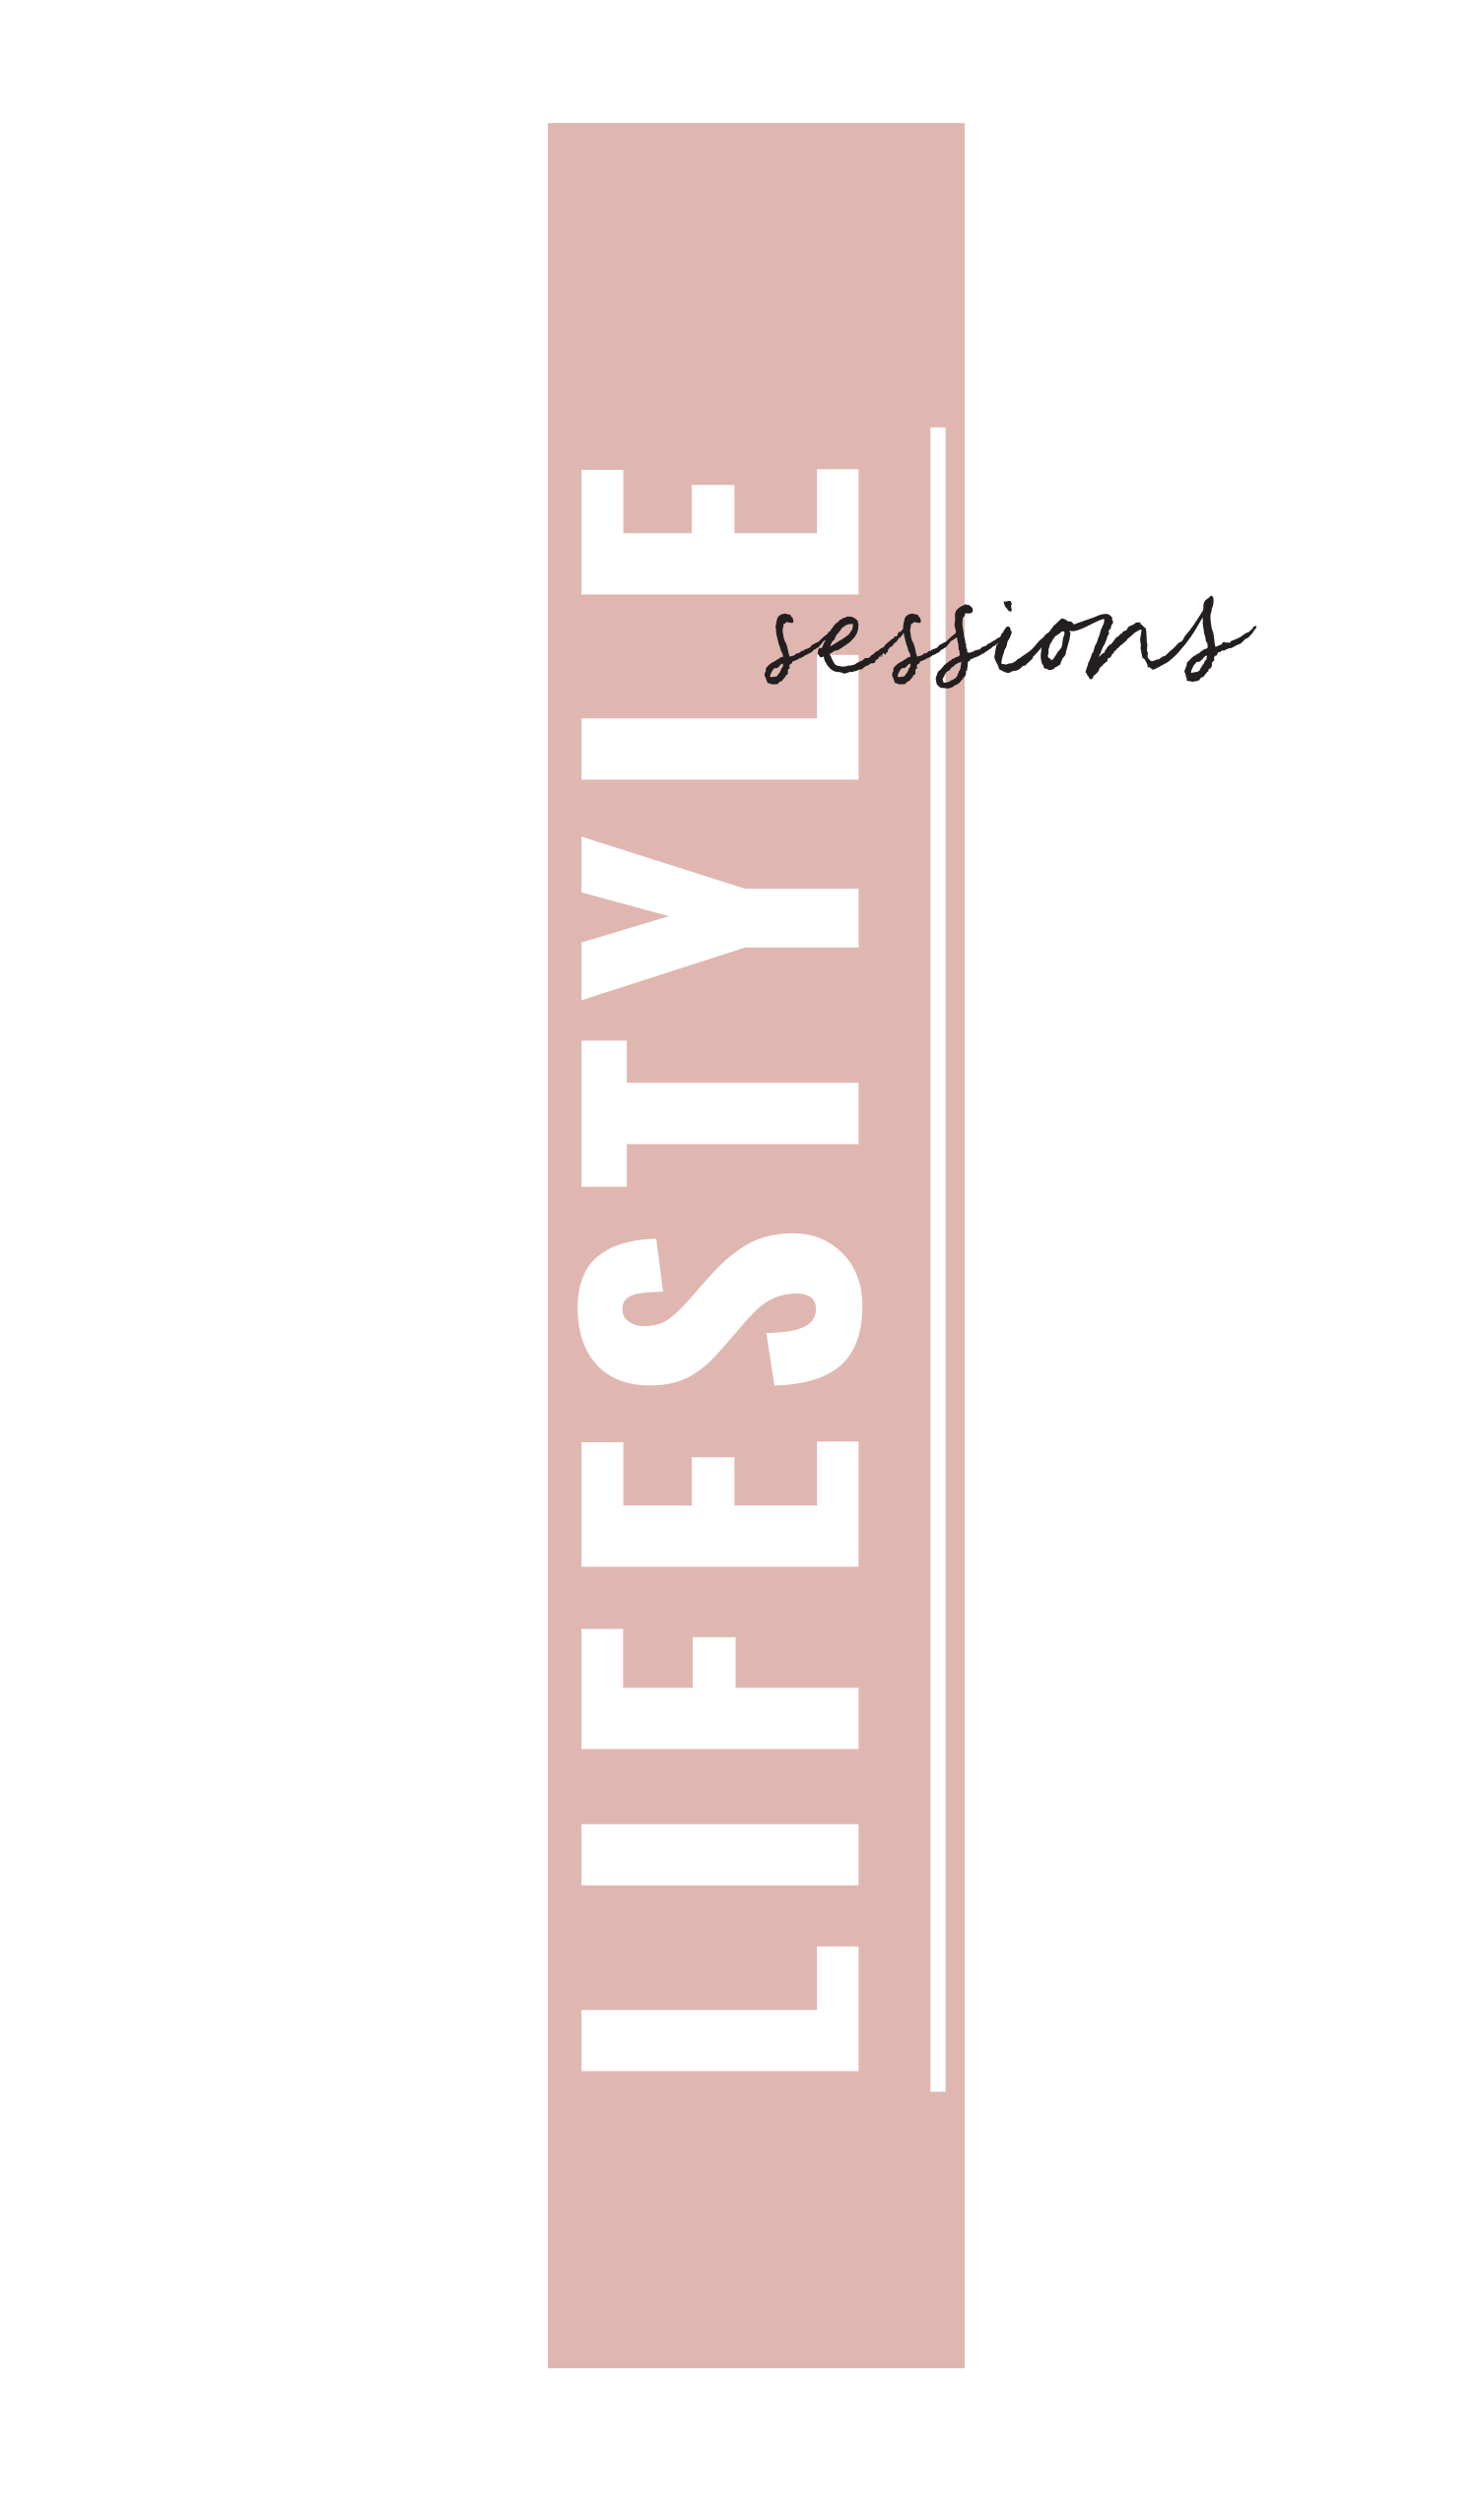 Gallery_LifestyleSessions.png